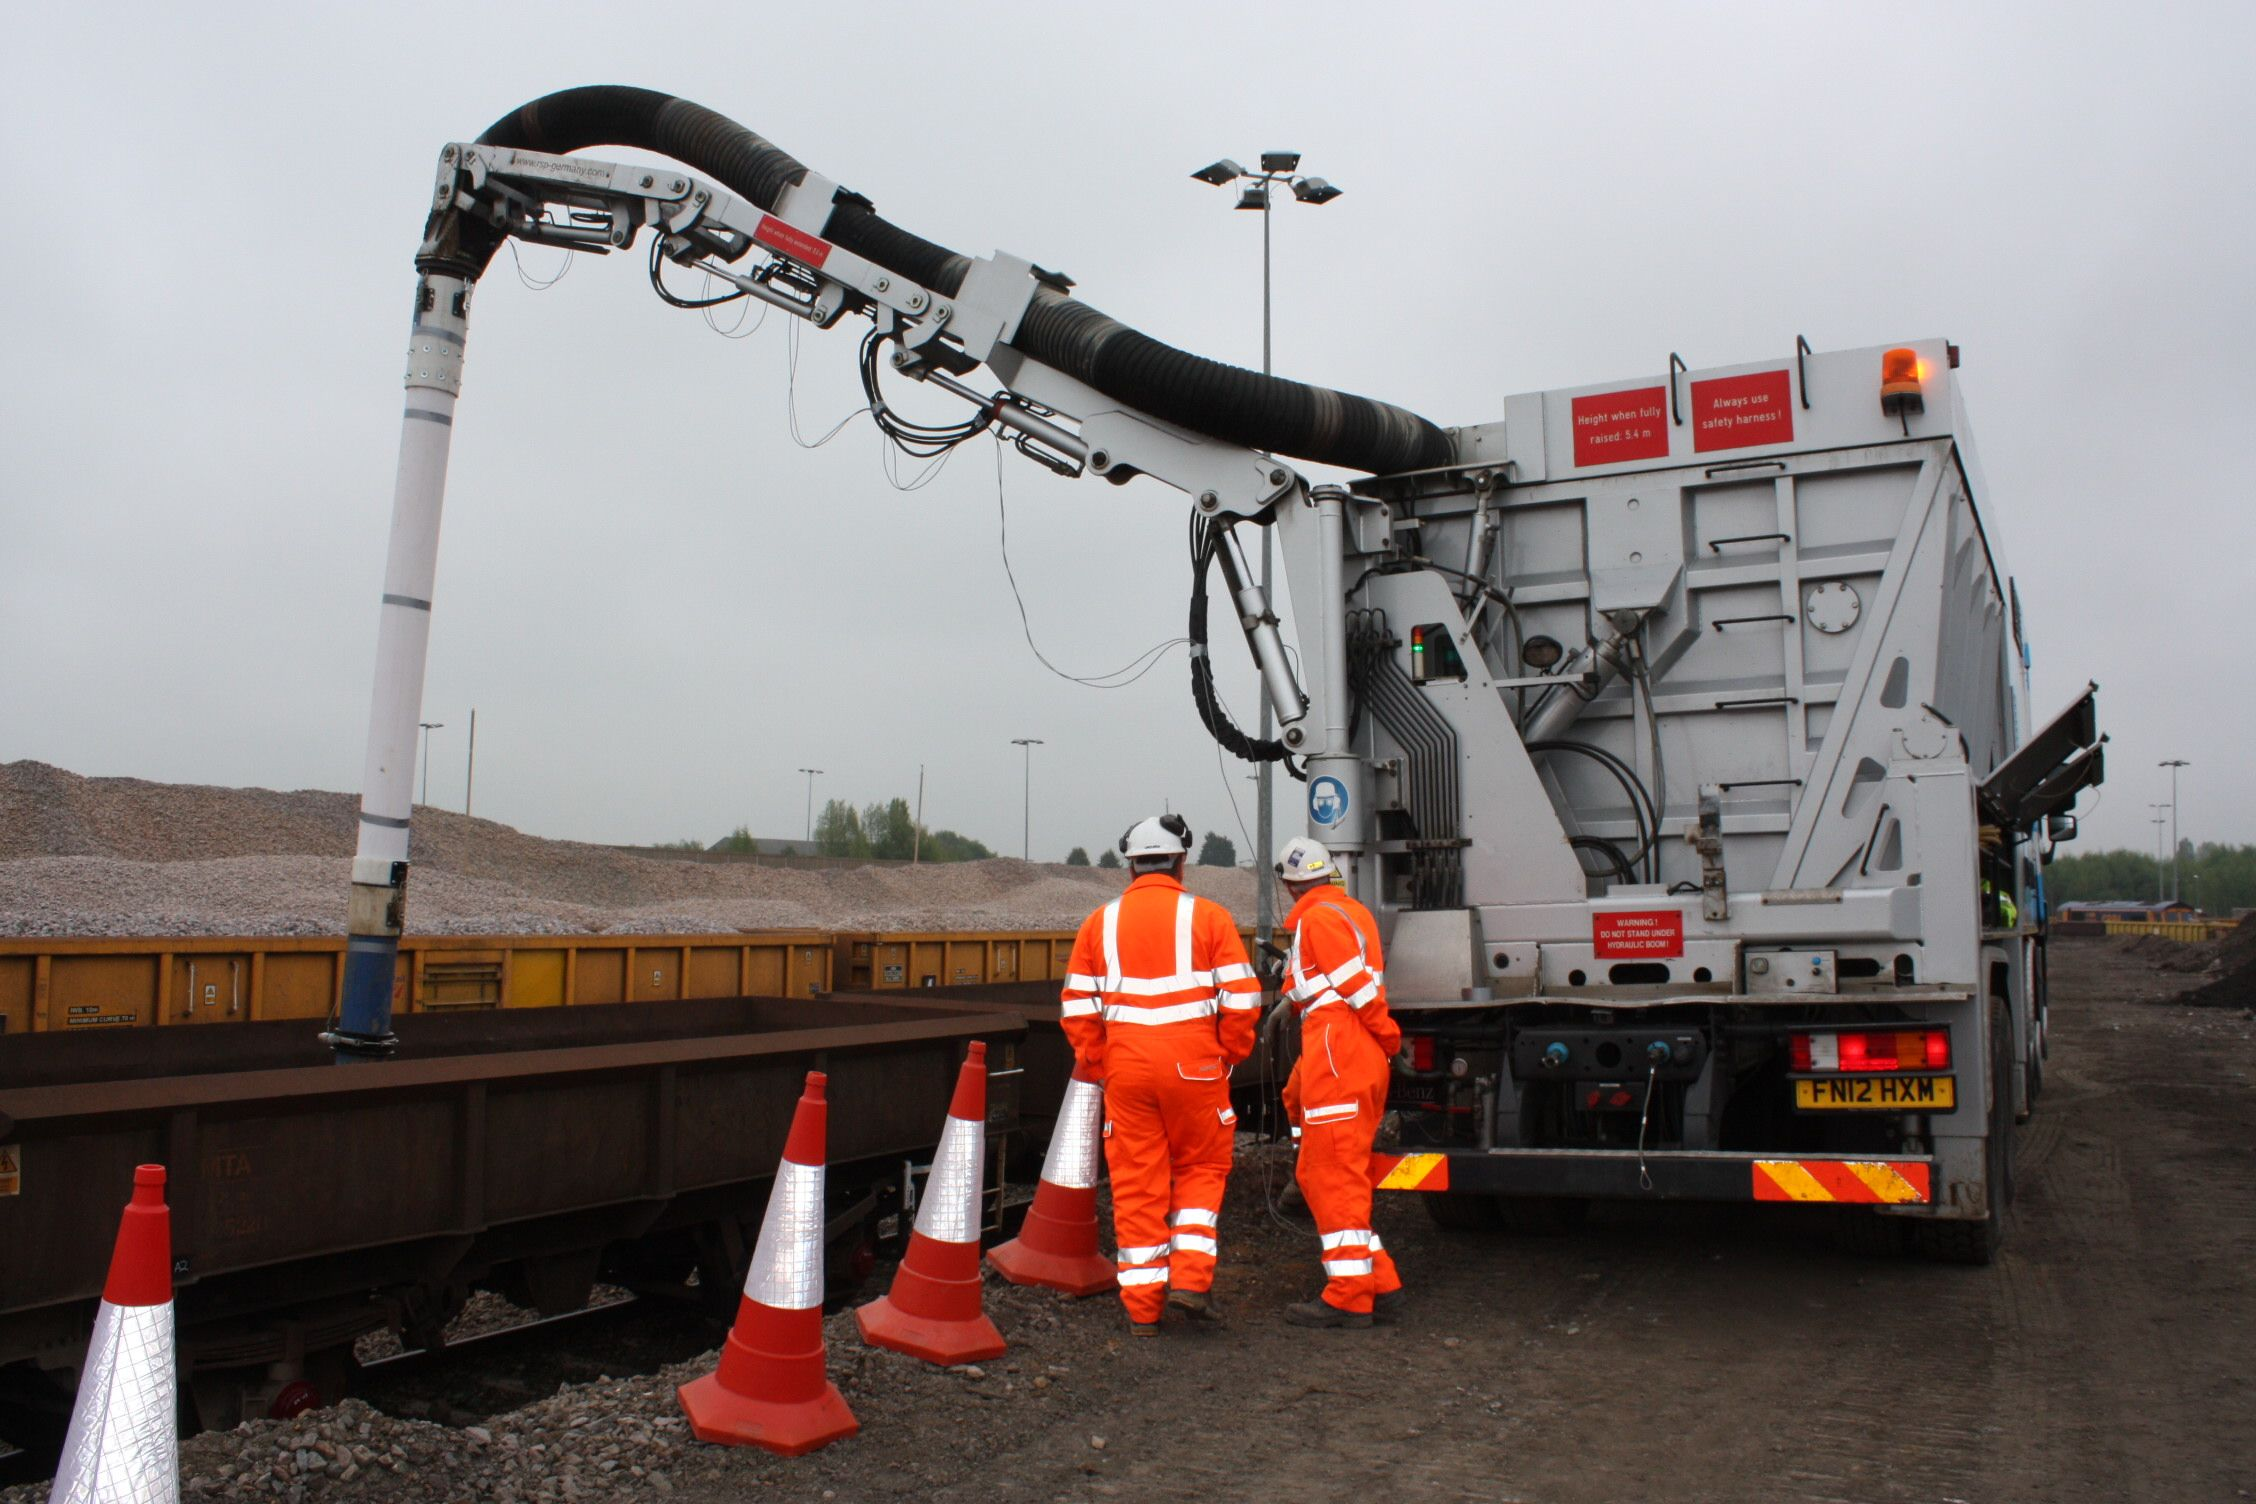 Removing rail ballast from wagons using suction excavation